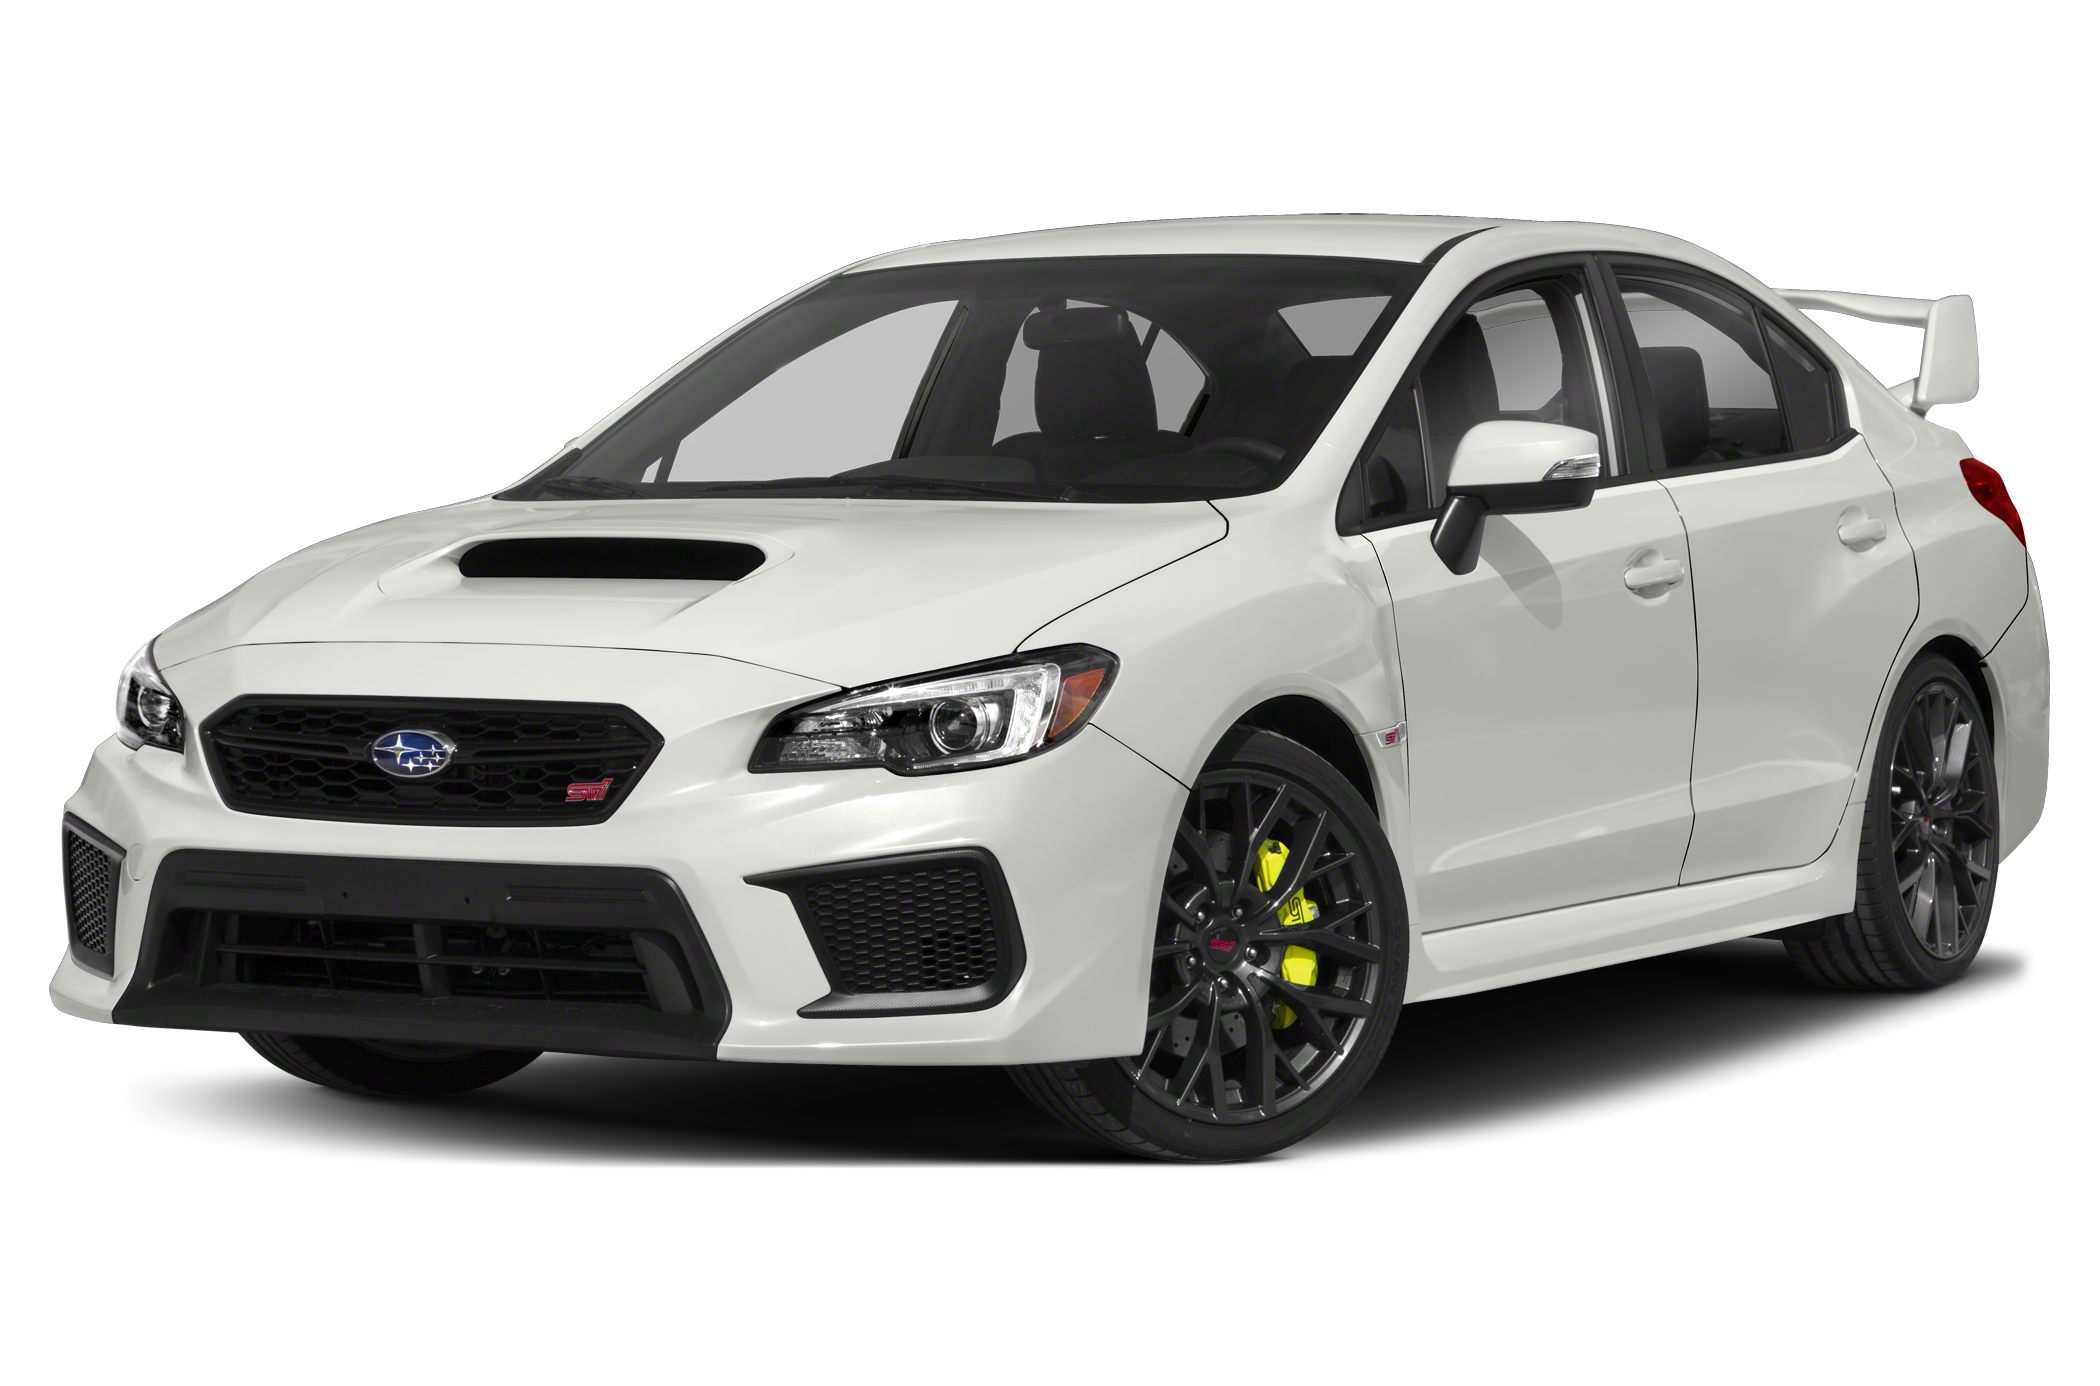 91 Best Review 2019 Subaru Sti Price Performance with 2019 Subaru Sti Price